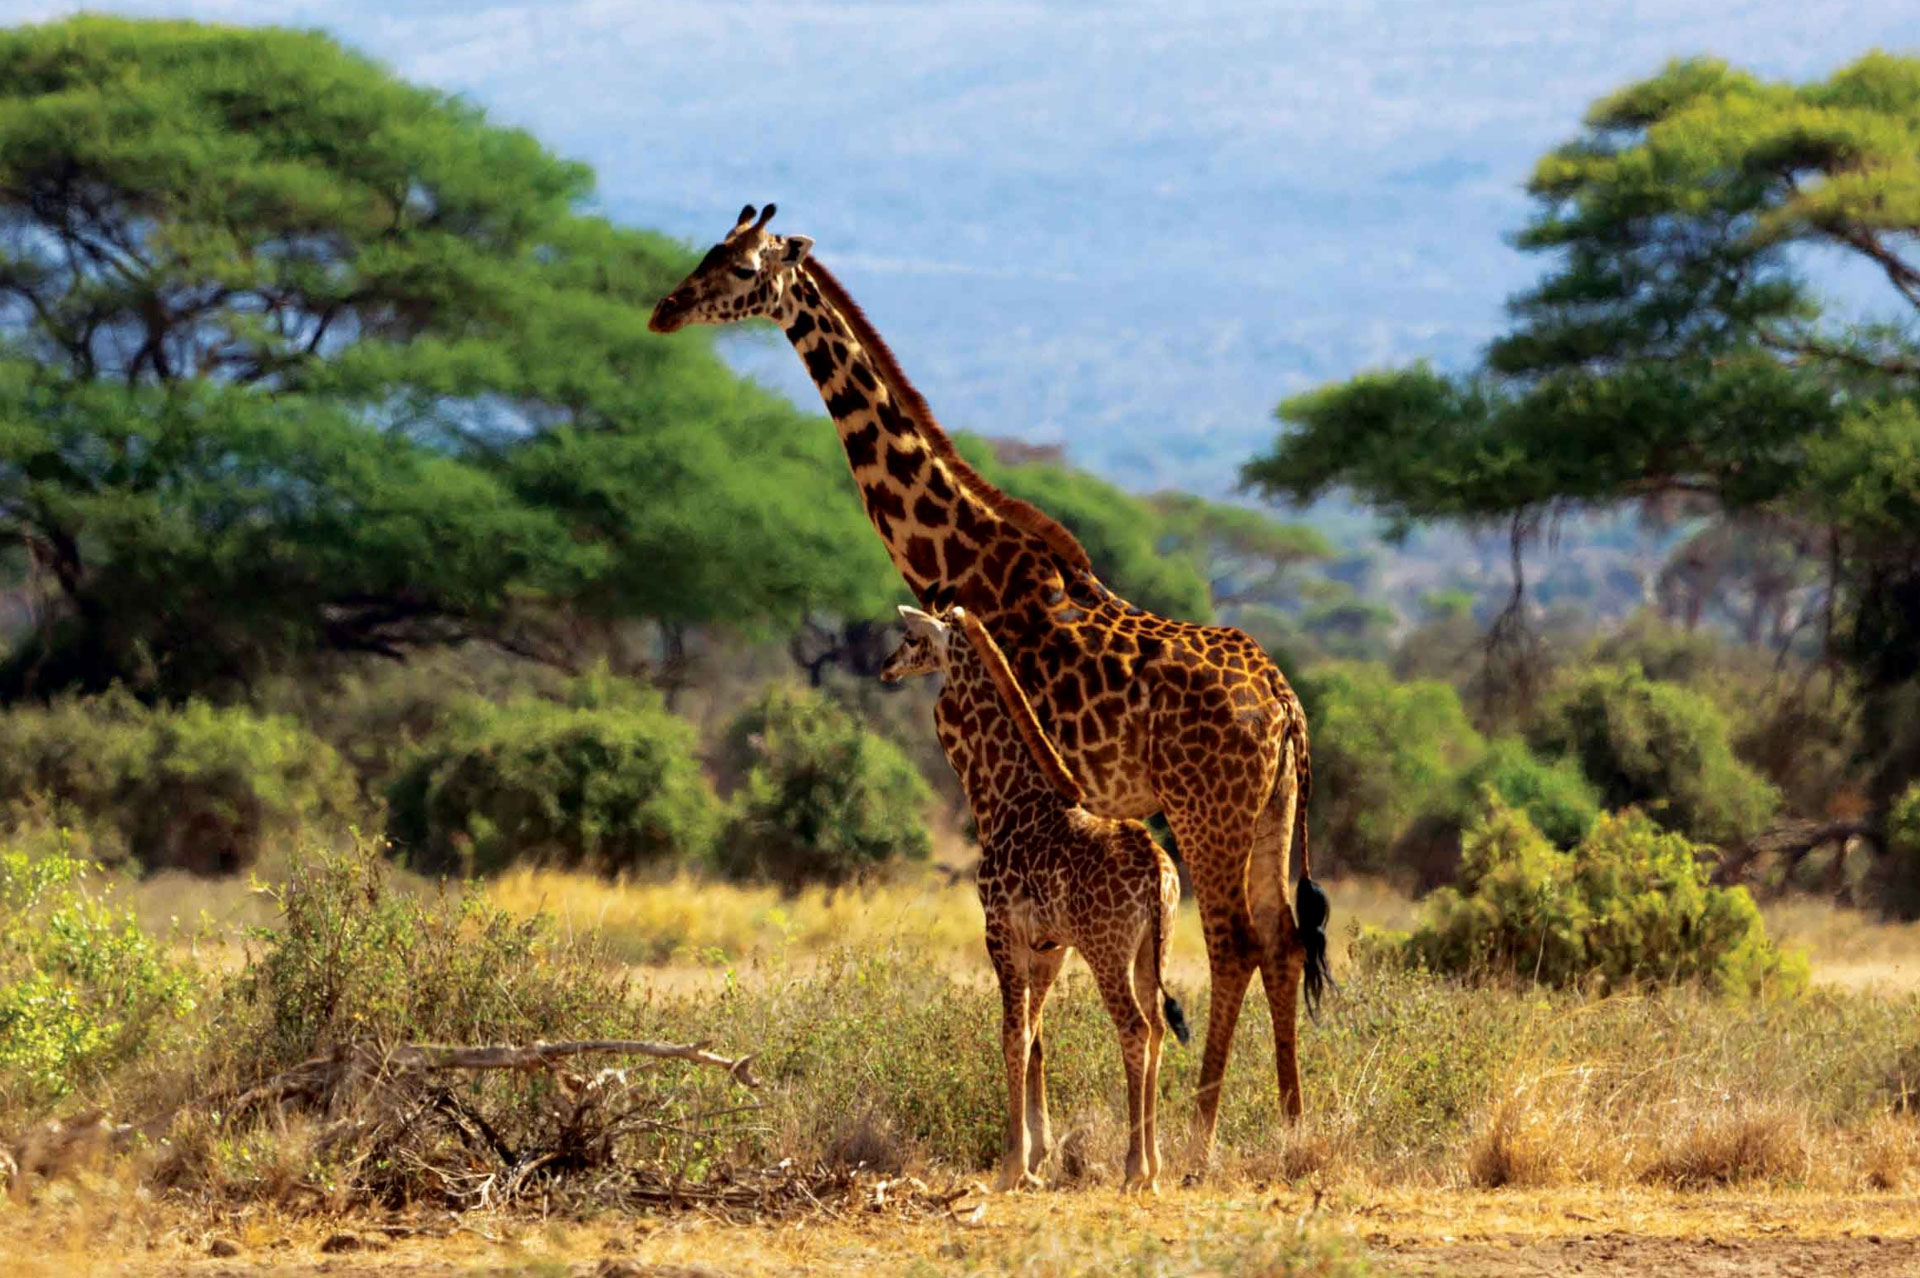 Diani_travel_center_National_Parks_in_Kenya_Amboseli_National_park_image_2